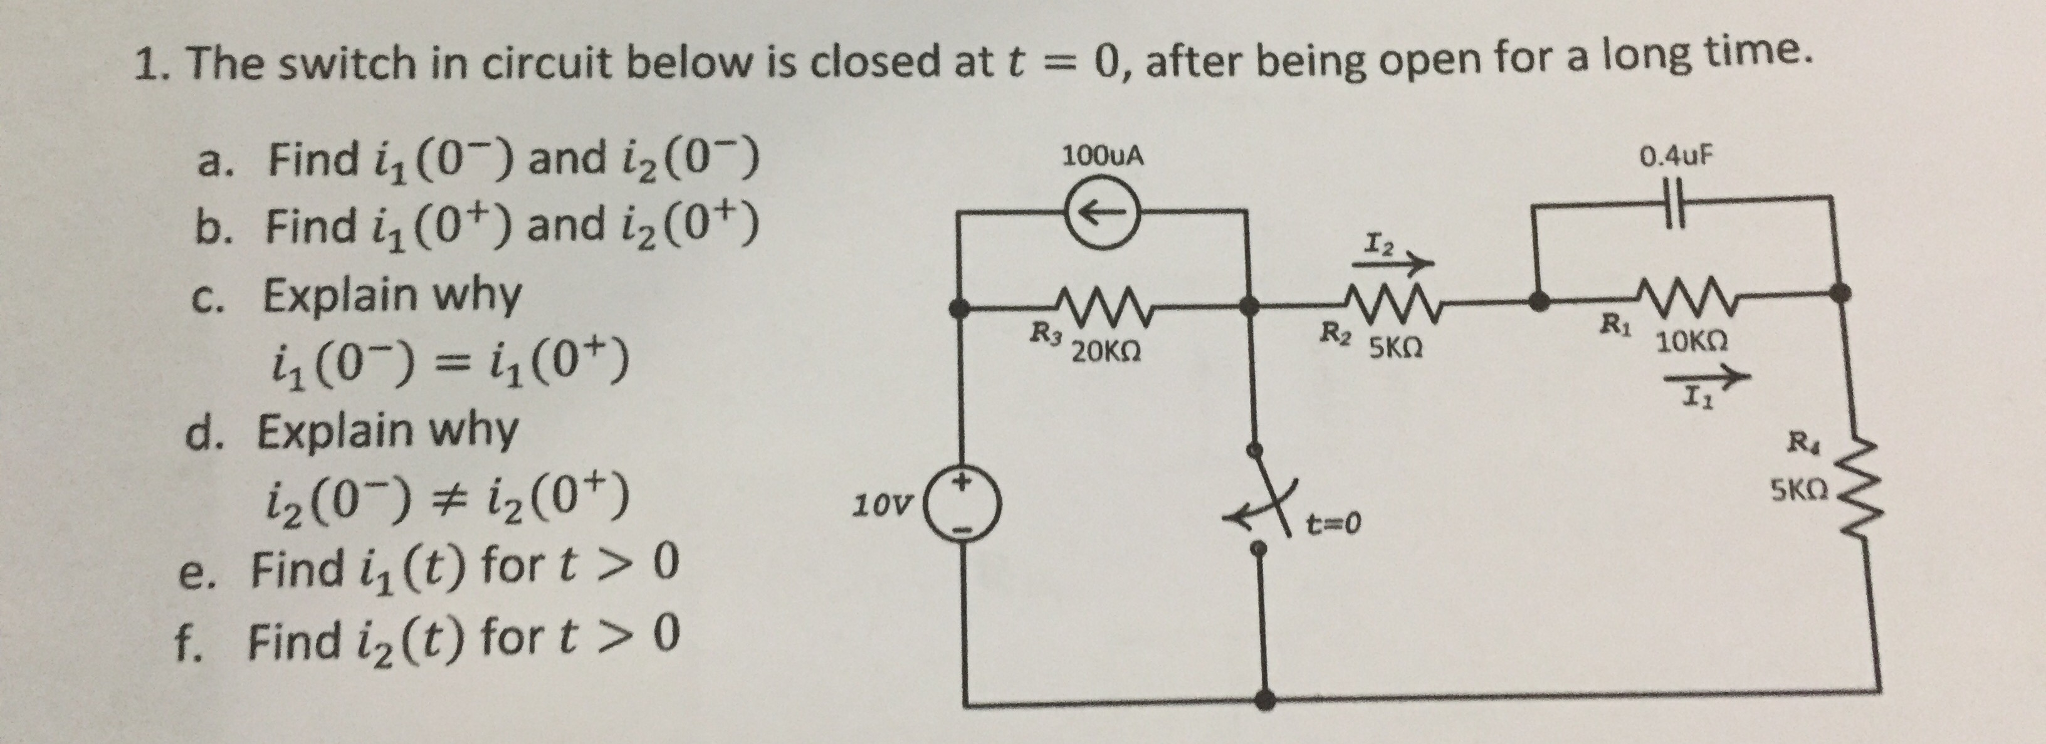 Solved: The Switch In Circuit Below Is Closed At T = 0, Af ...